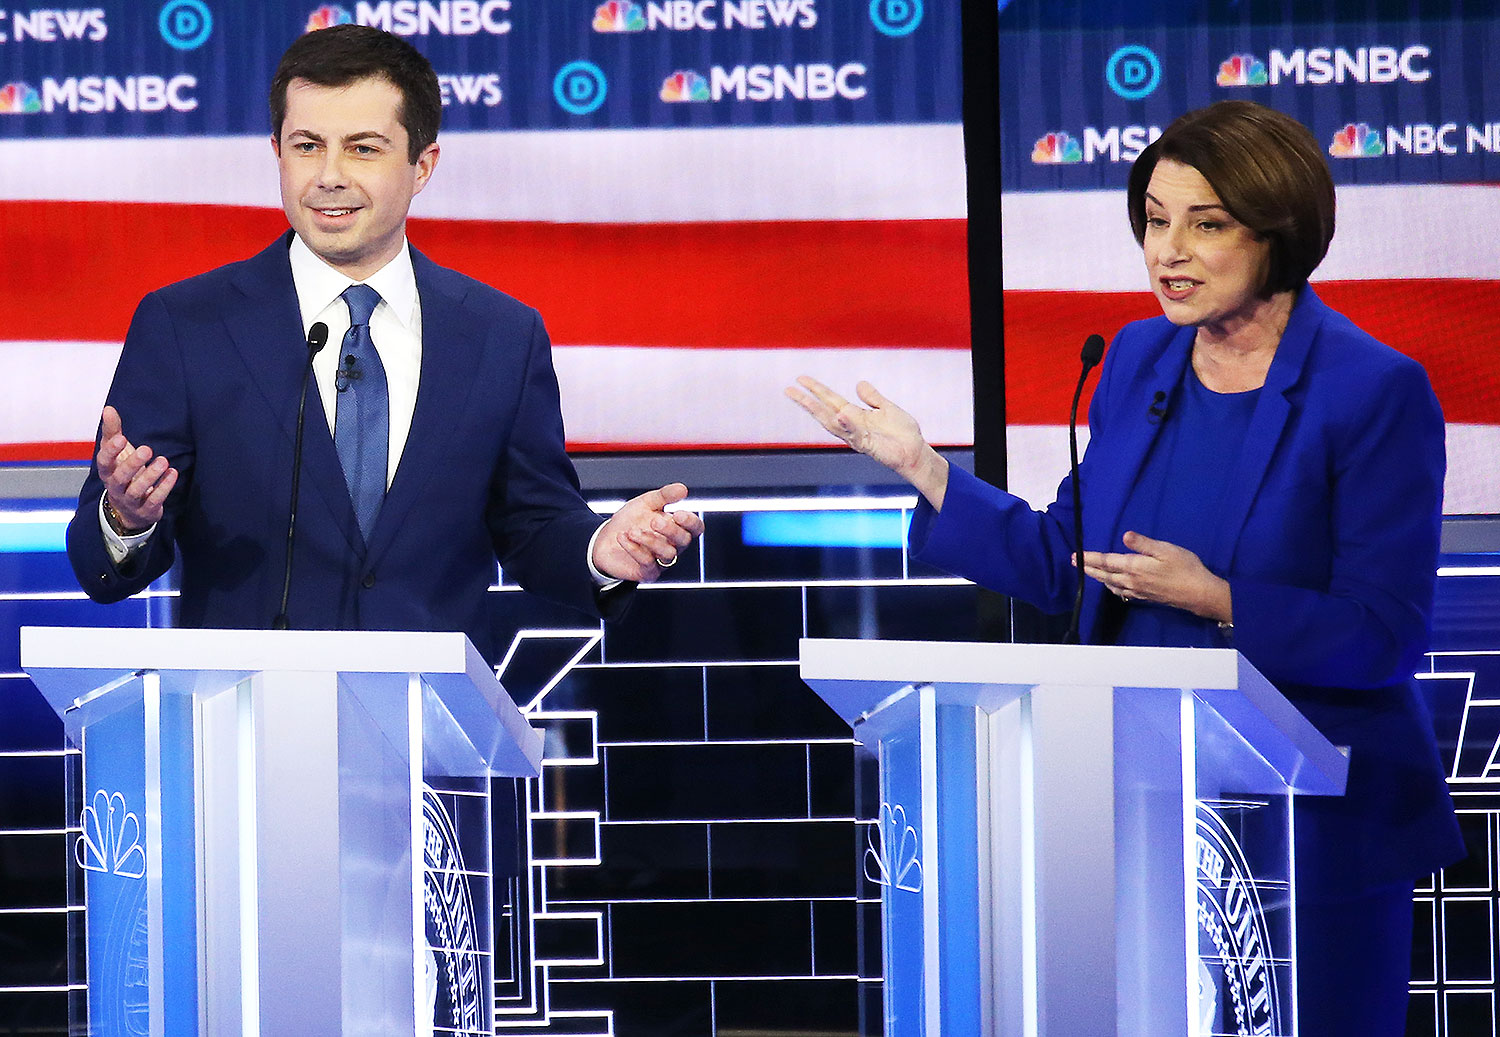 Democratic presidential candidate former South Bend, Indiana Mayor Pete Buttigieg (L) and Sen. Amy Klobuchar